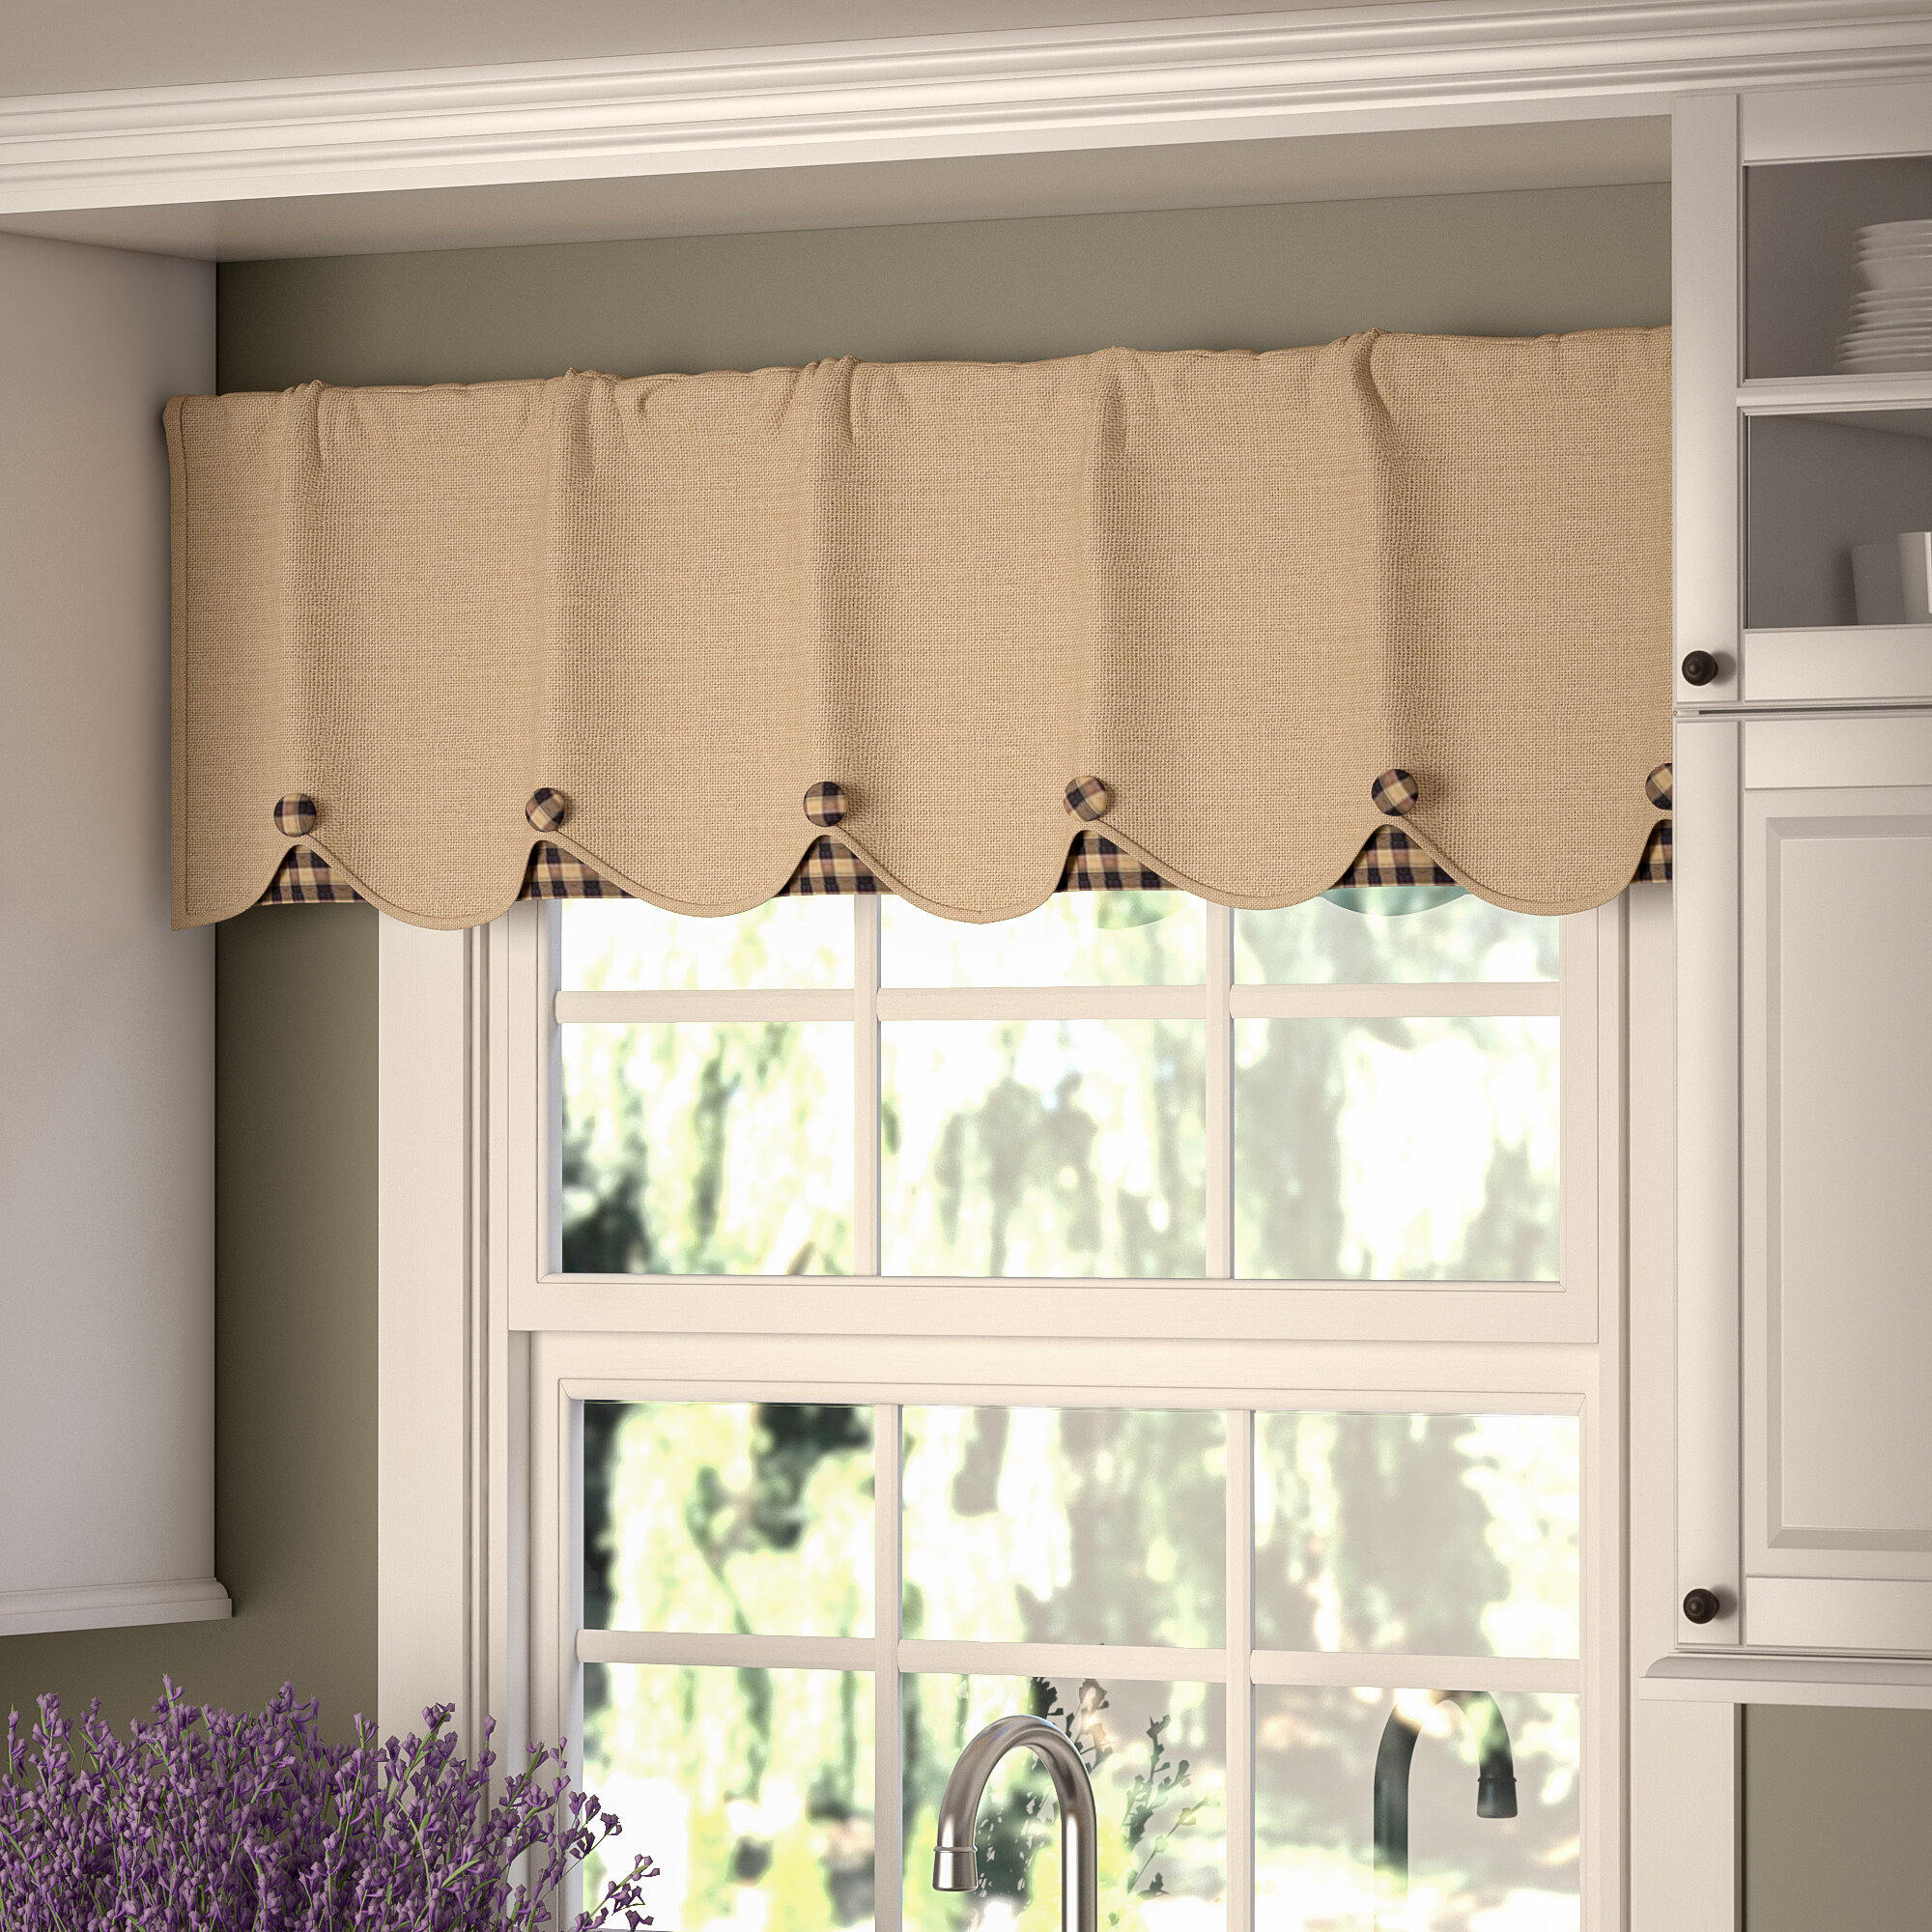 rod carousel and stripes coordinating dots valances large designs pocket trim valance window with patterns accent gray white